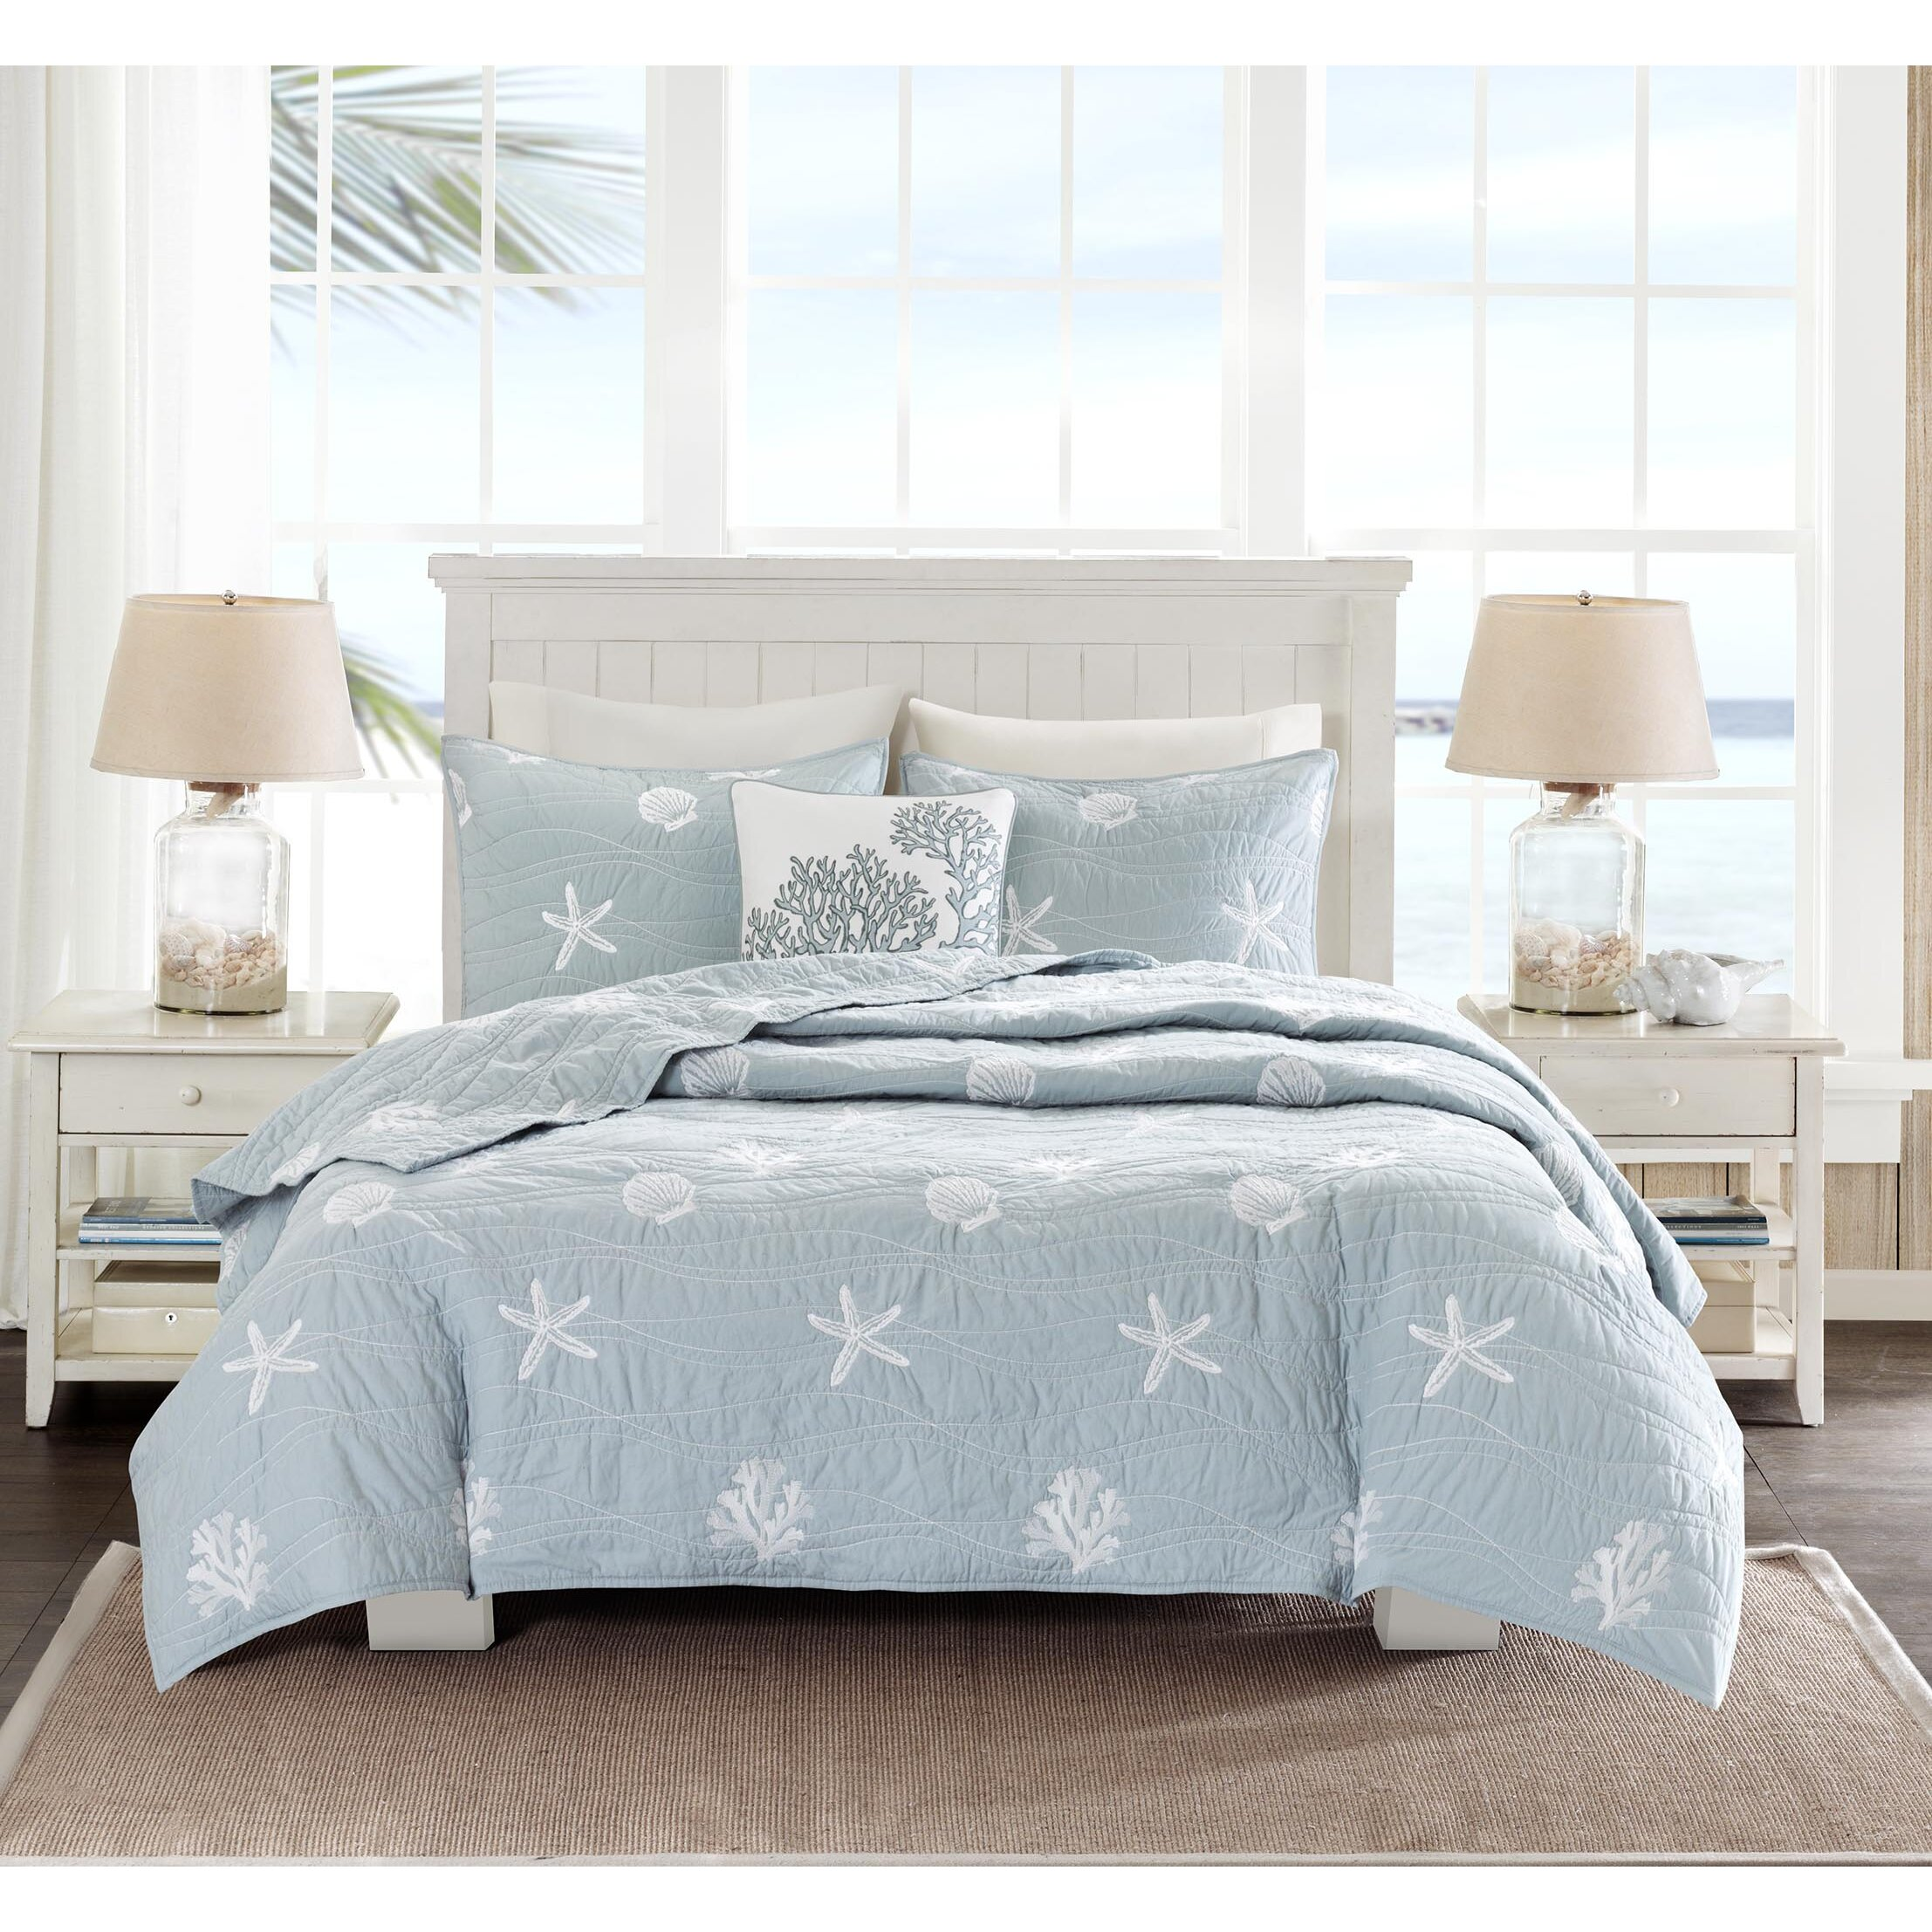 Seaside Bedroom Harbor House Seaside 4 Piece Queen Coverlet Set Reviews Wayfairca